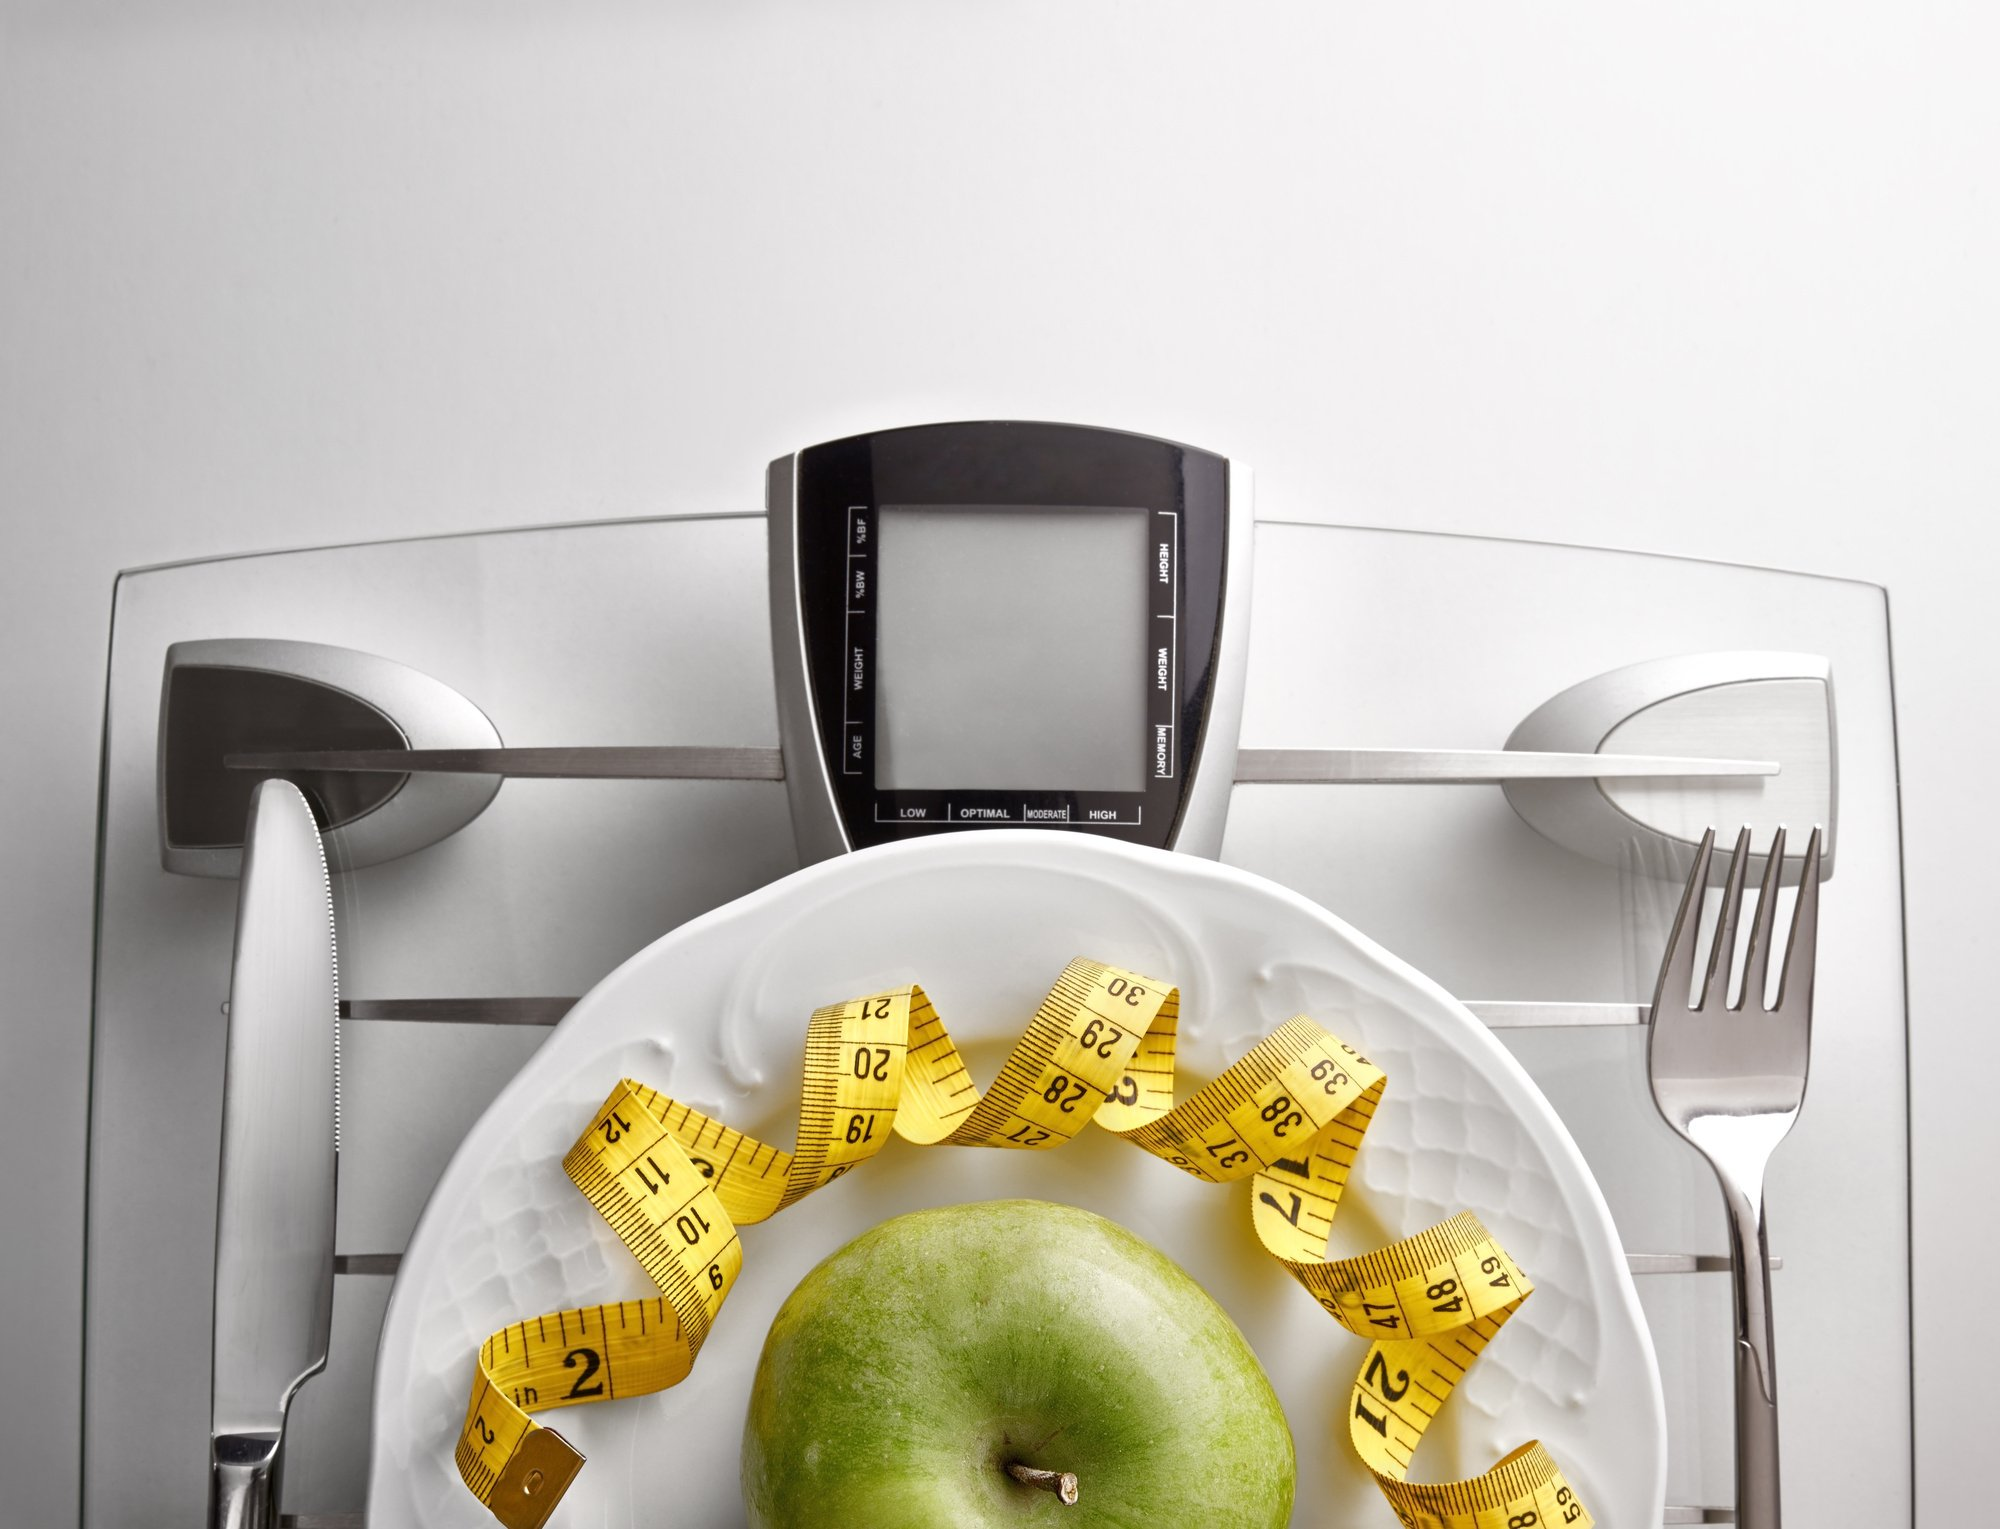 image of a plate holding an apple and measuring tape on top of a scale that has a knife and fork.